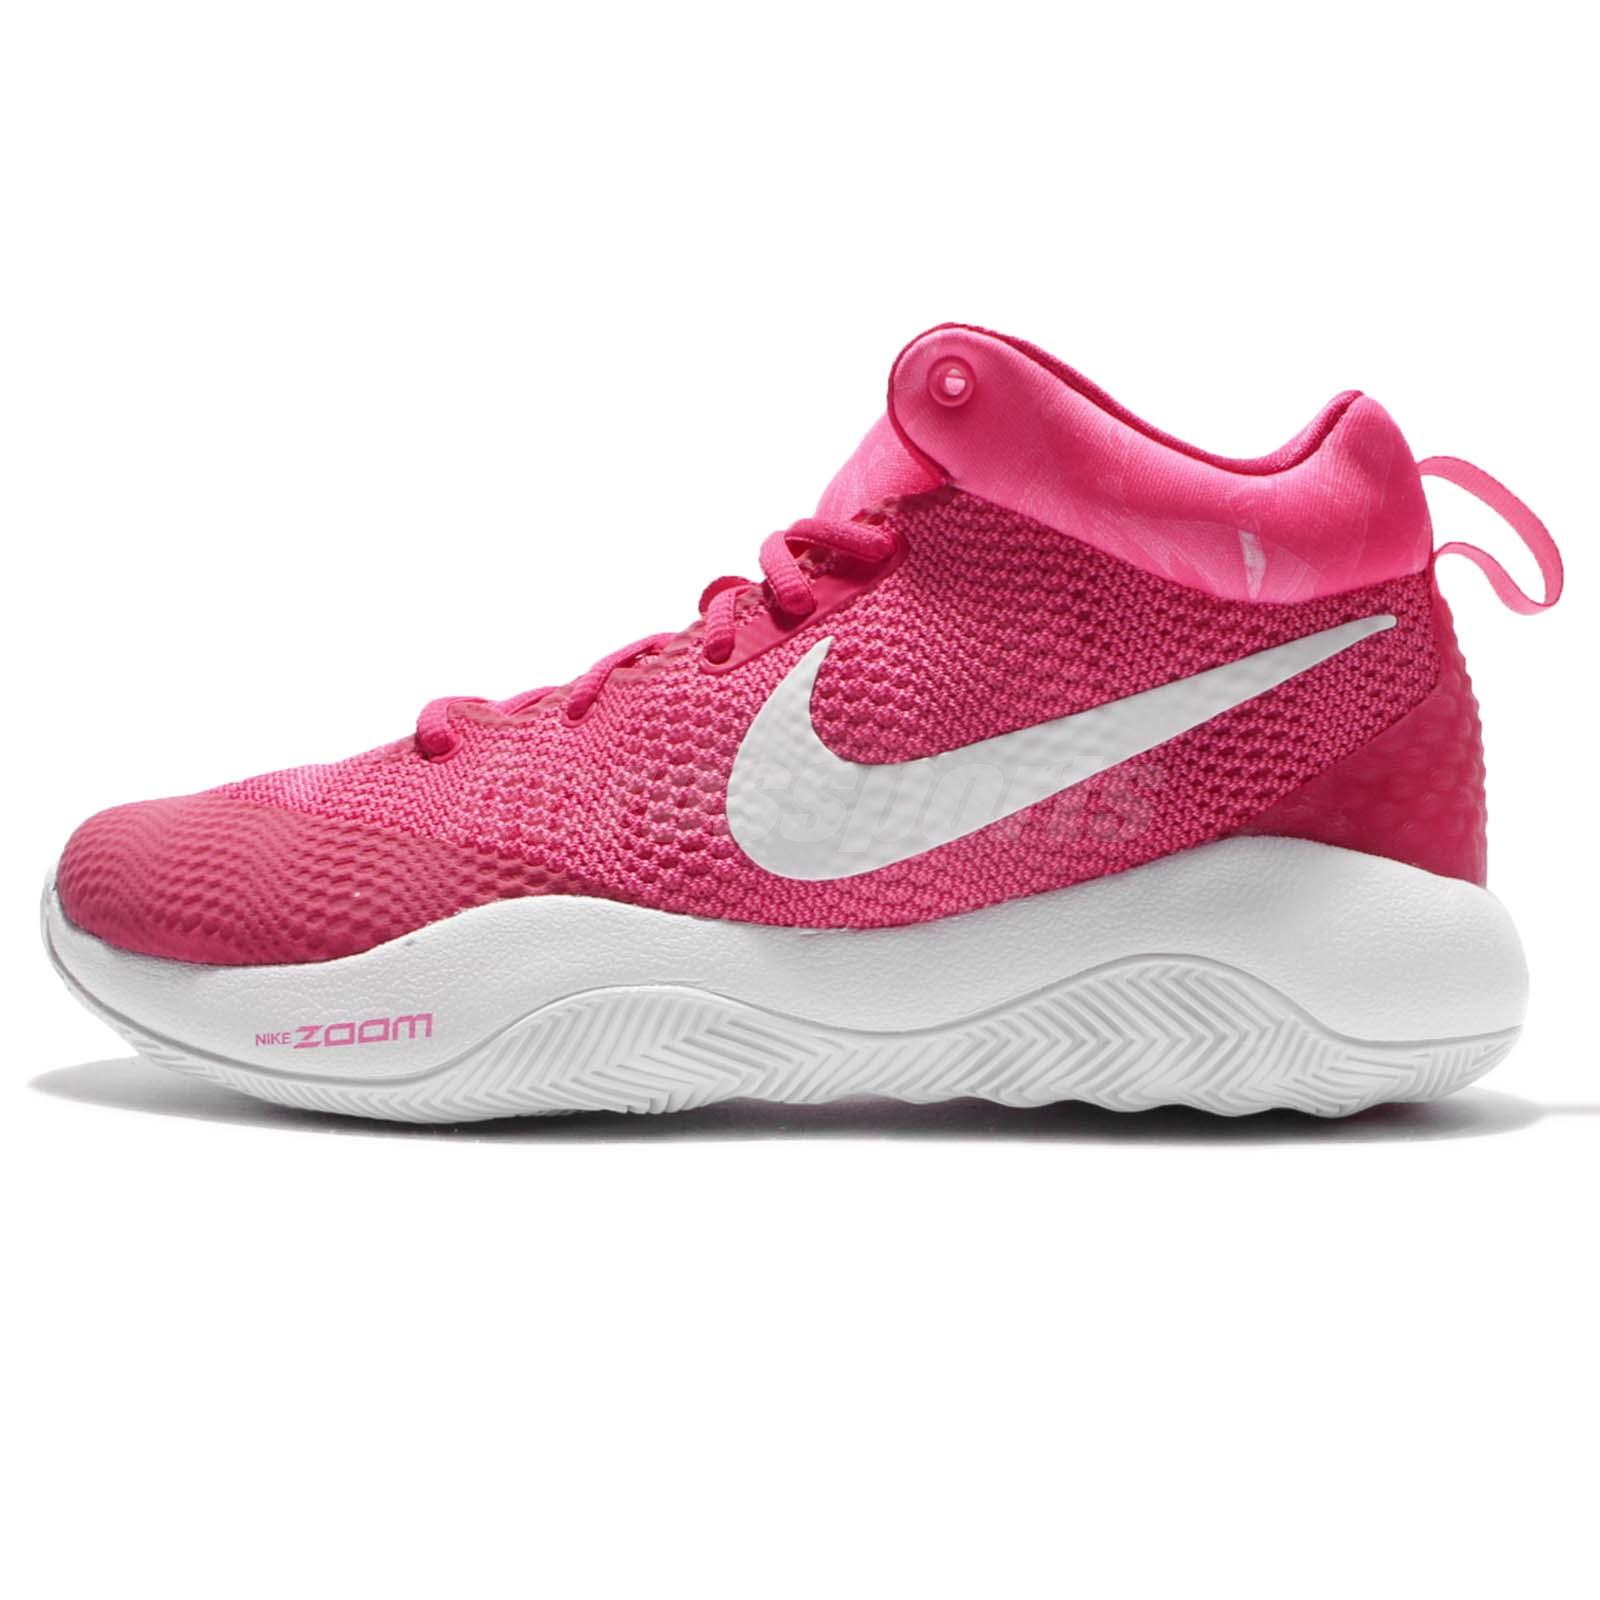 62e337a2f438 ... wholesale nike zoom rev ep 2017 hyperrev kay yow breast cancer men  basketball 852423 616 .